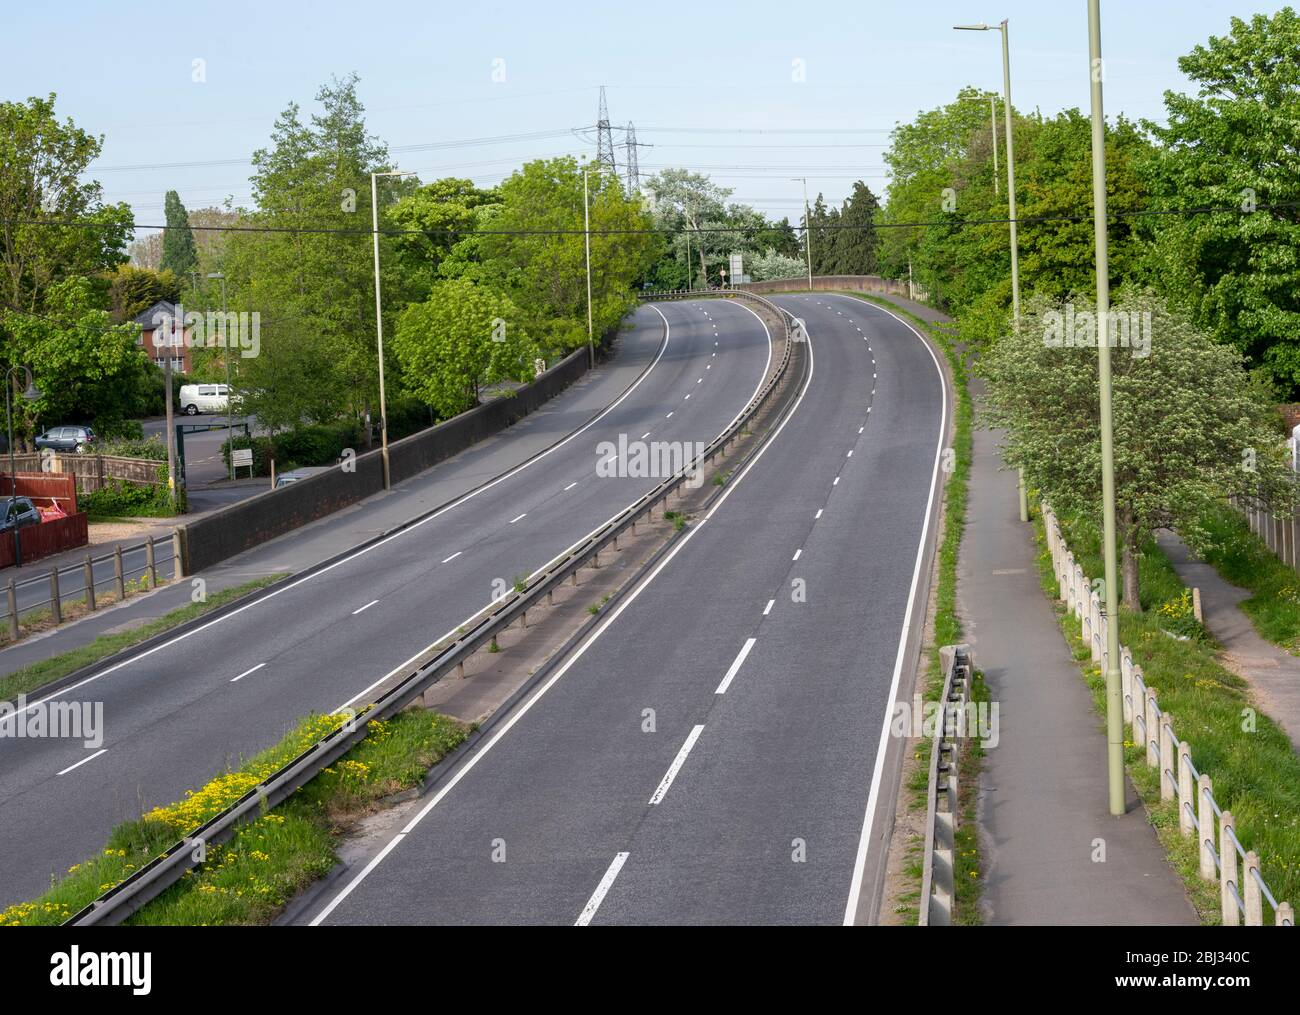 """an empty main road (A35 Totton Bypass) due to the """"Stay at home"""" coronavirus message - April 2020 Stock Photo"""